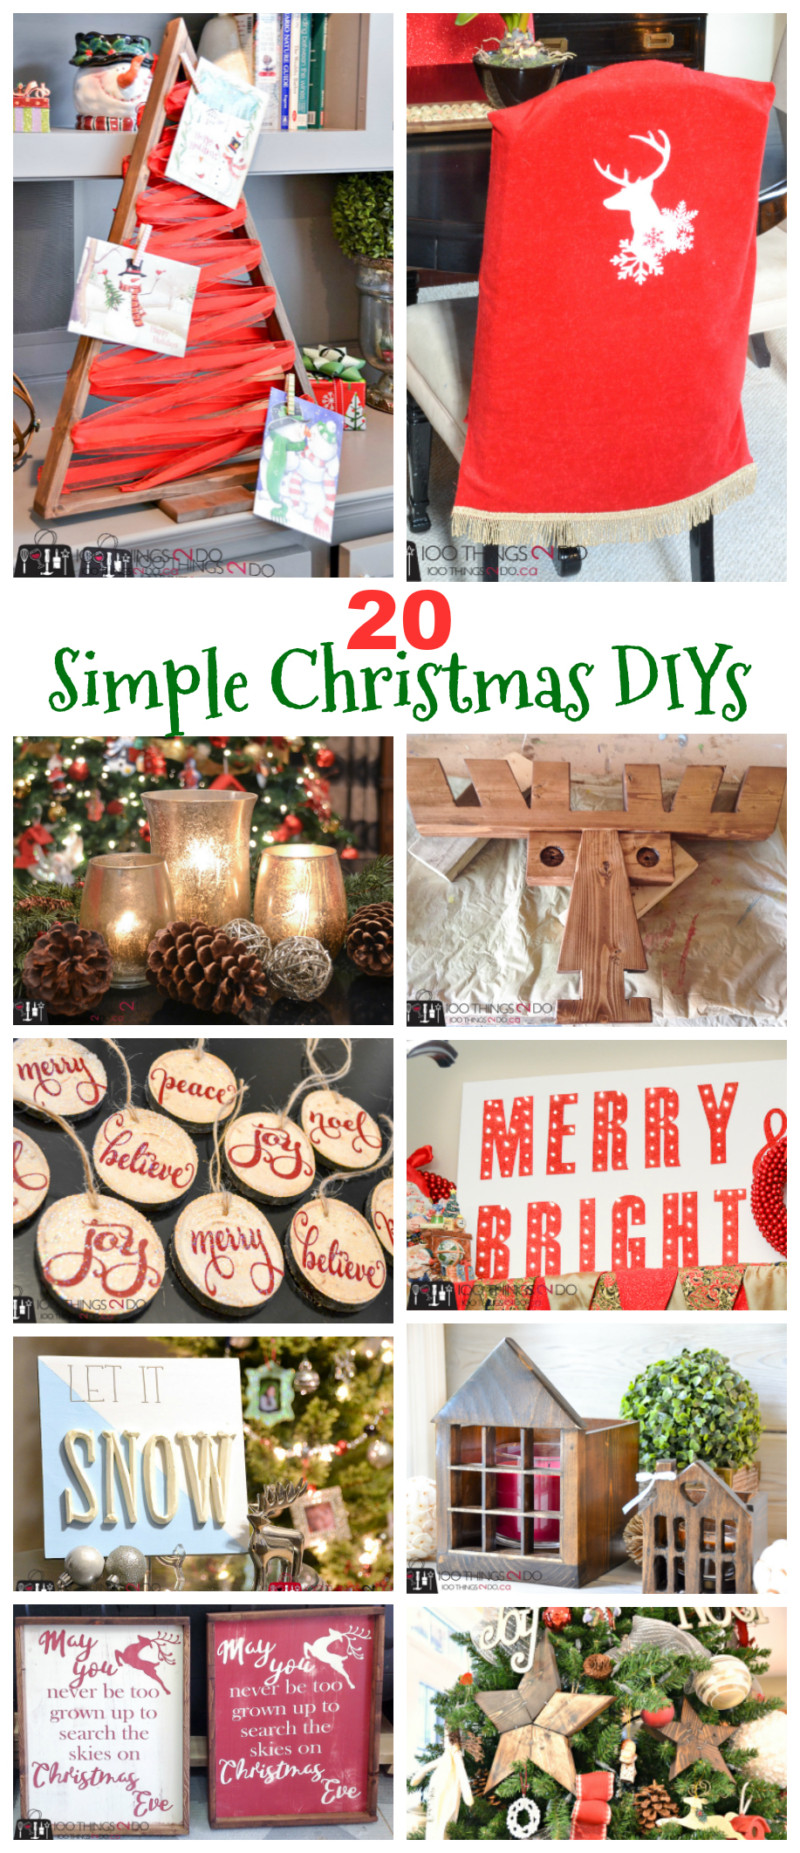 20 Simple Christmas DIYs, Christmas DIY, Easy Christmas crafts, DIY Christmas decor